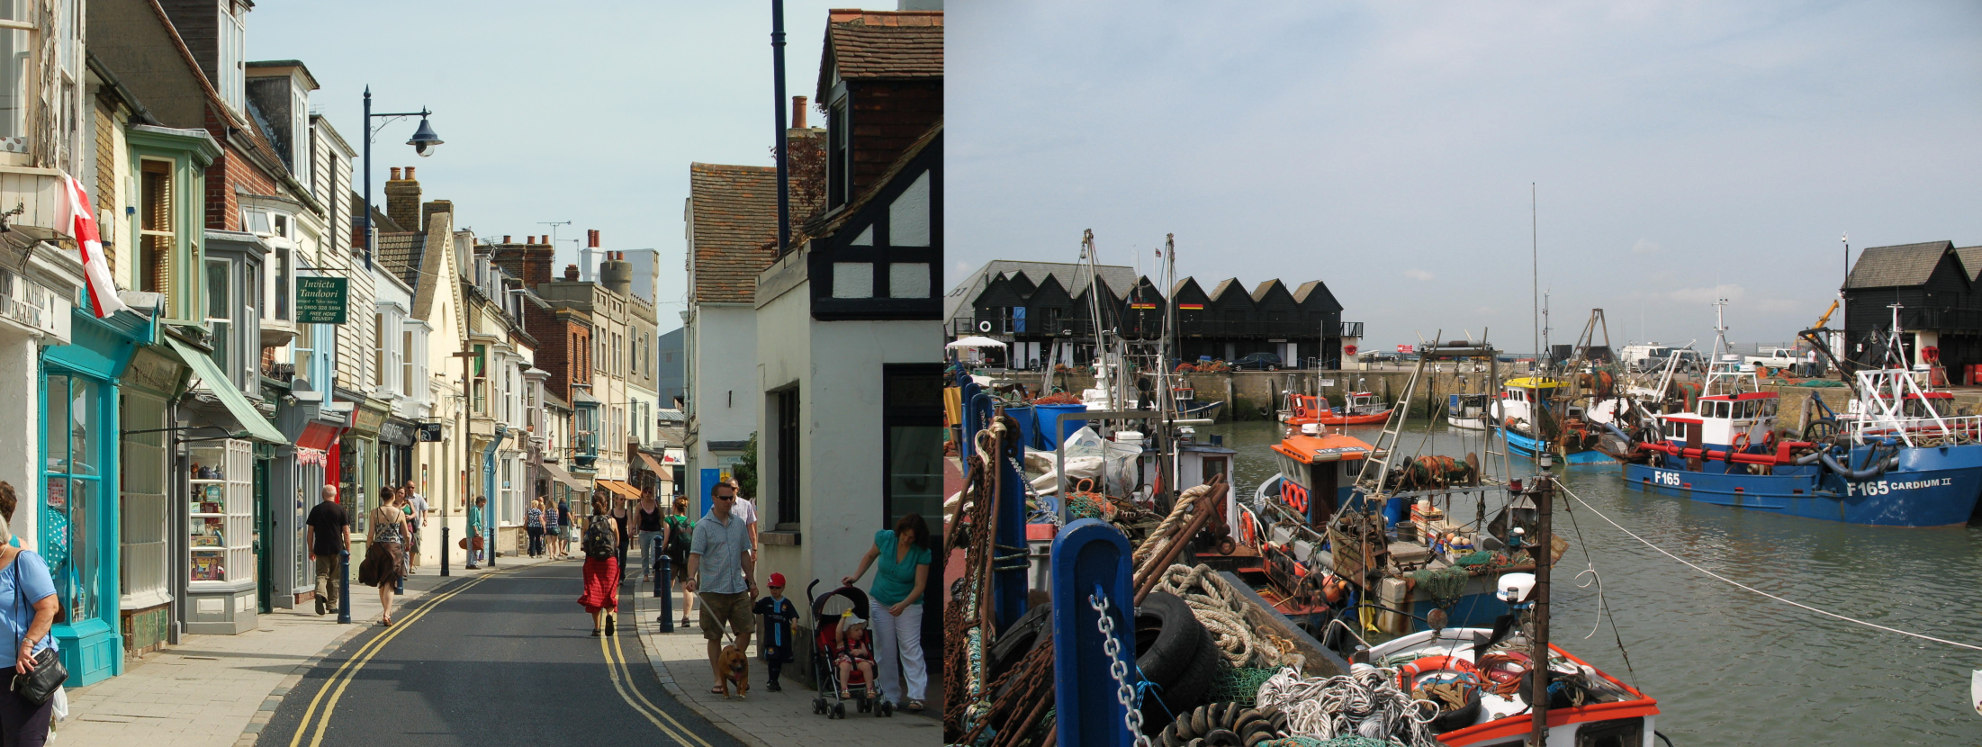 Whitstable-town-&-Harbour